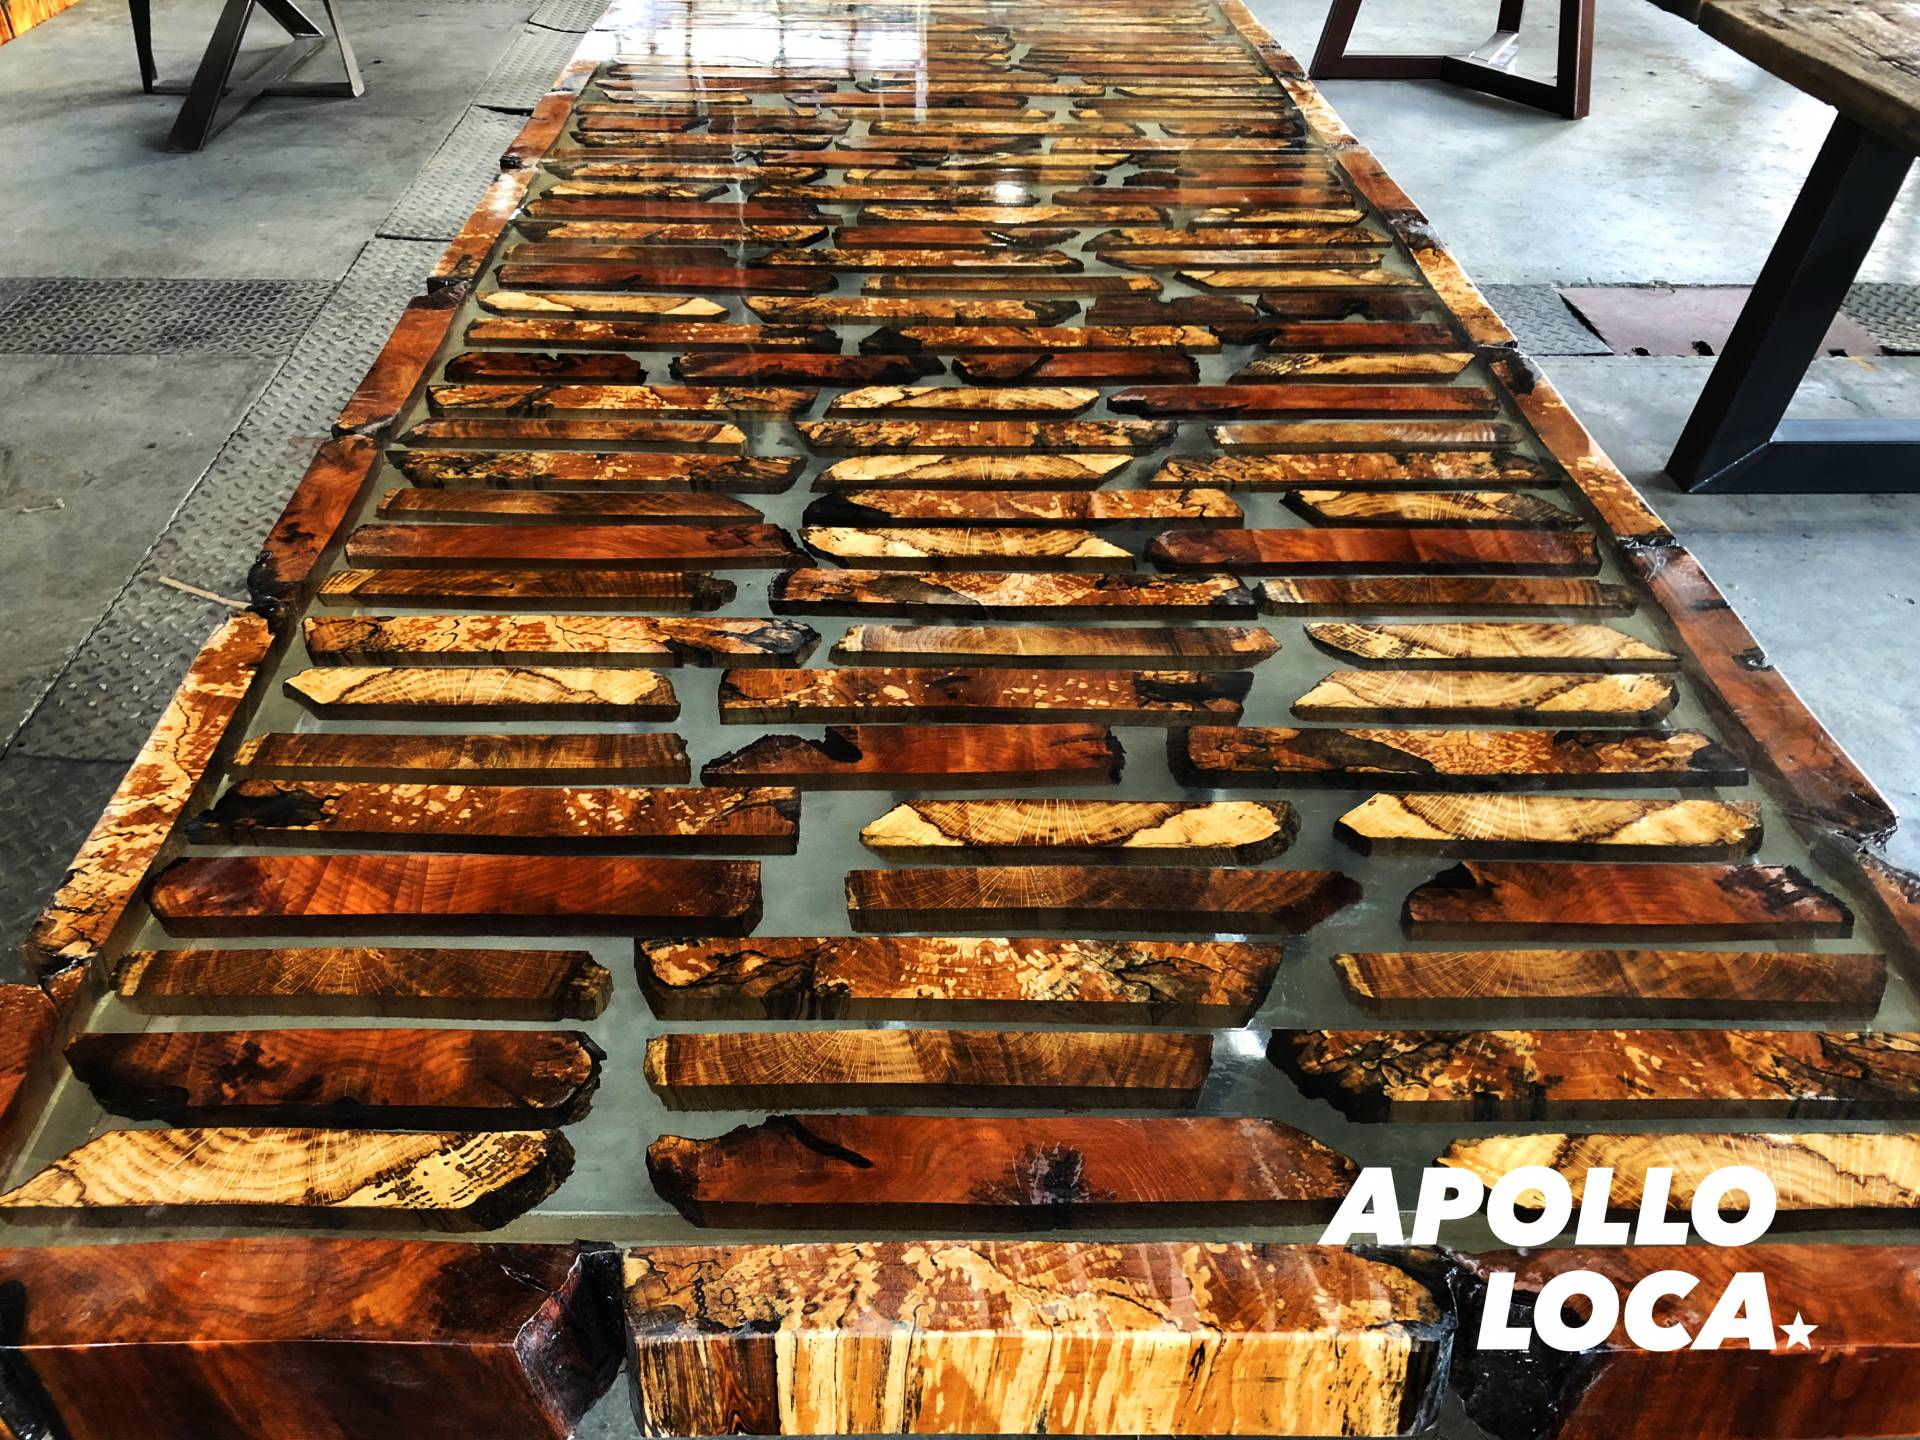 apollo-loca-epoxy-wood-table-1